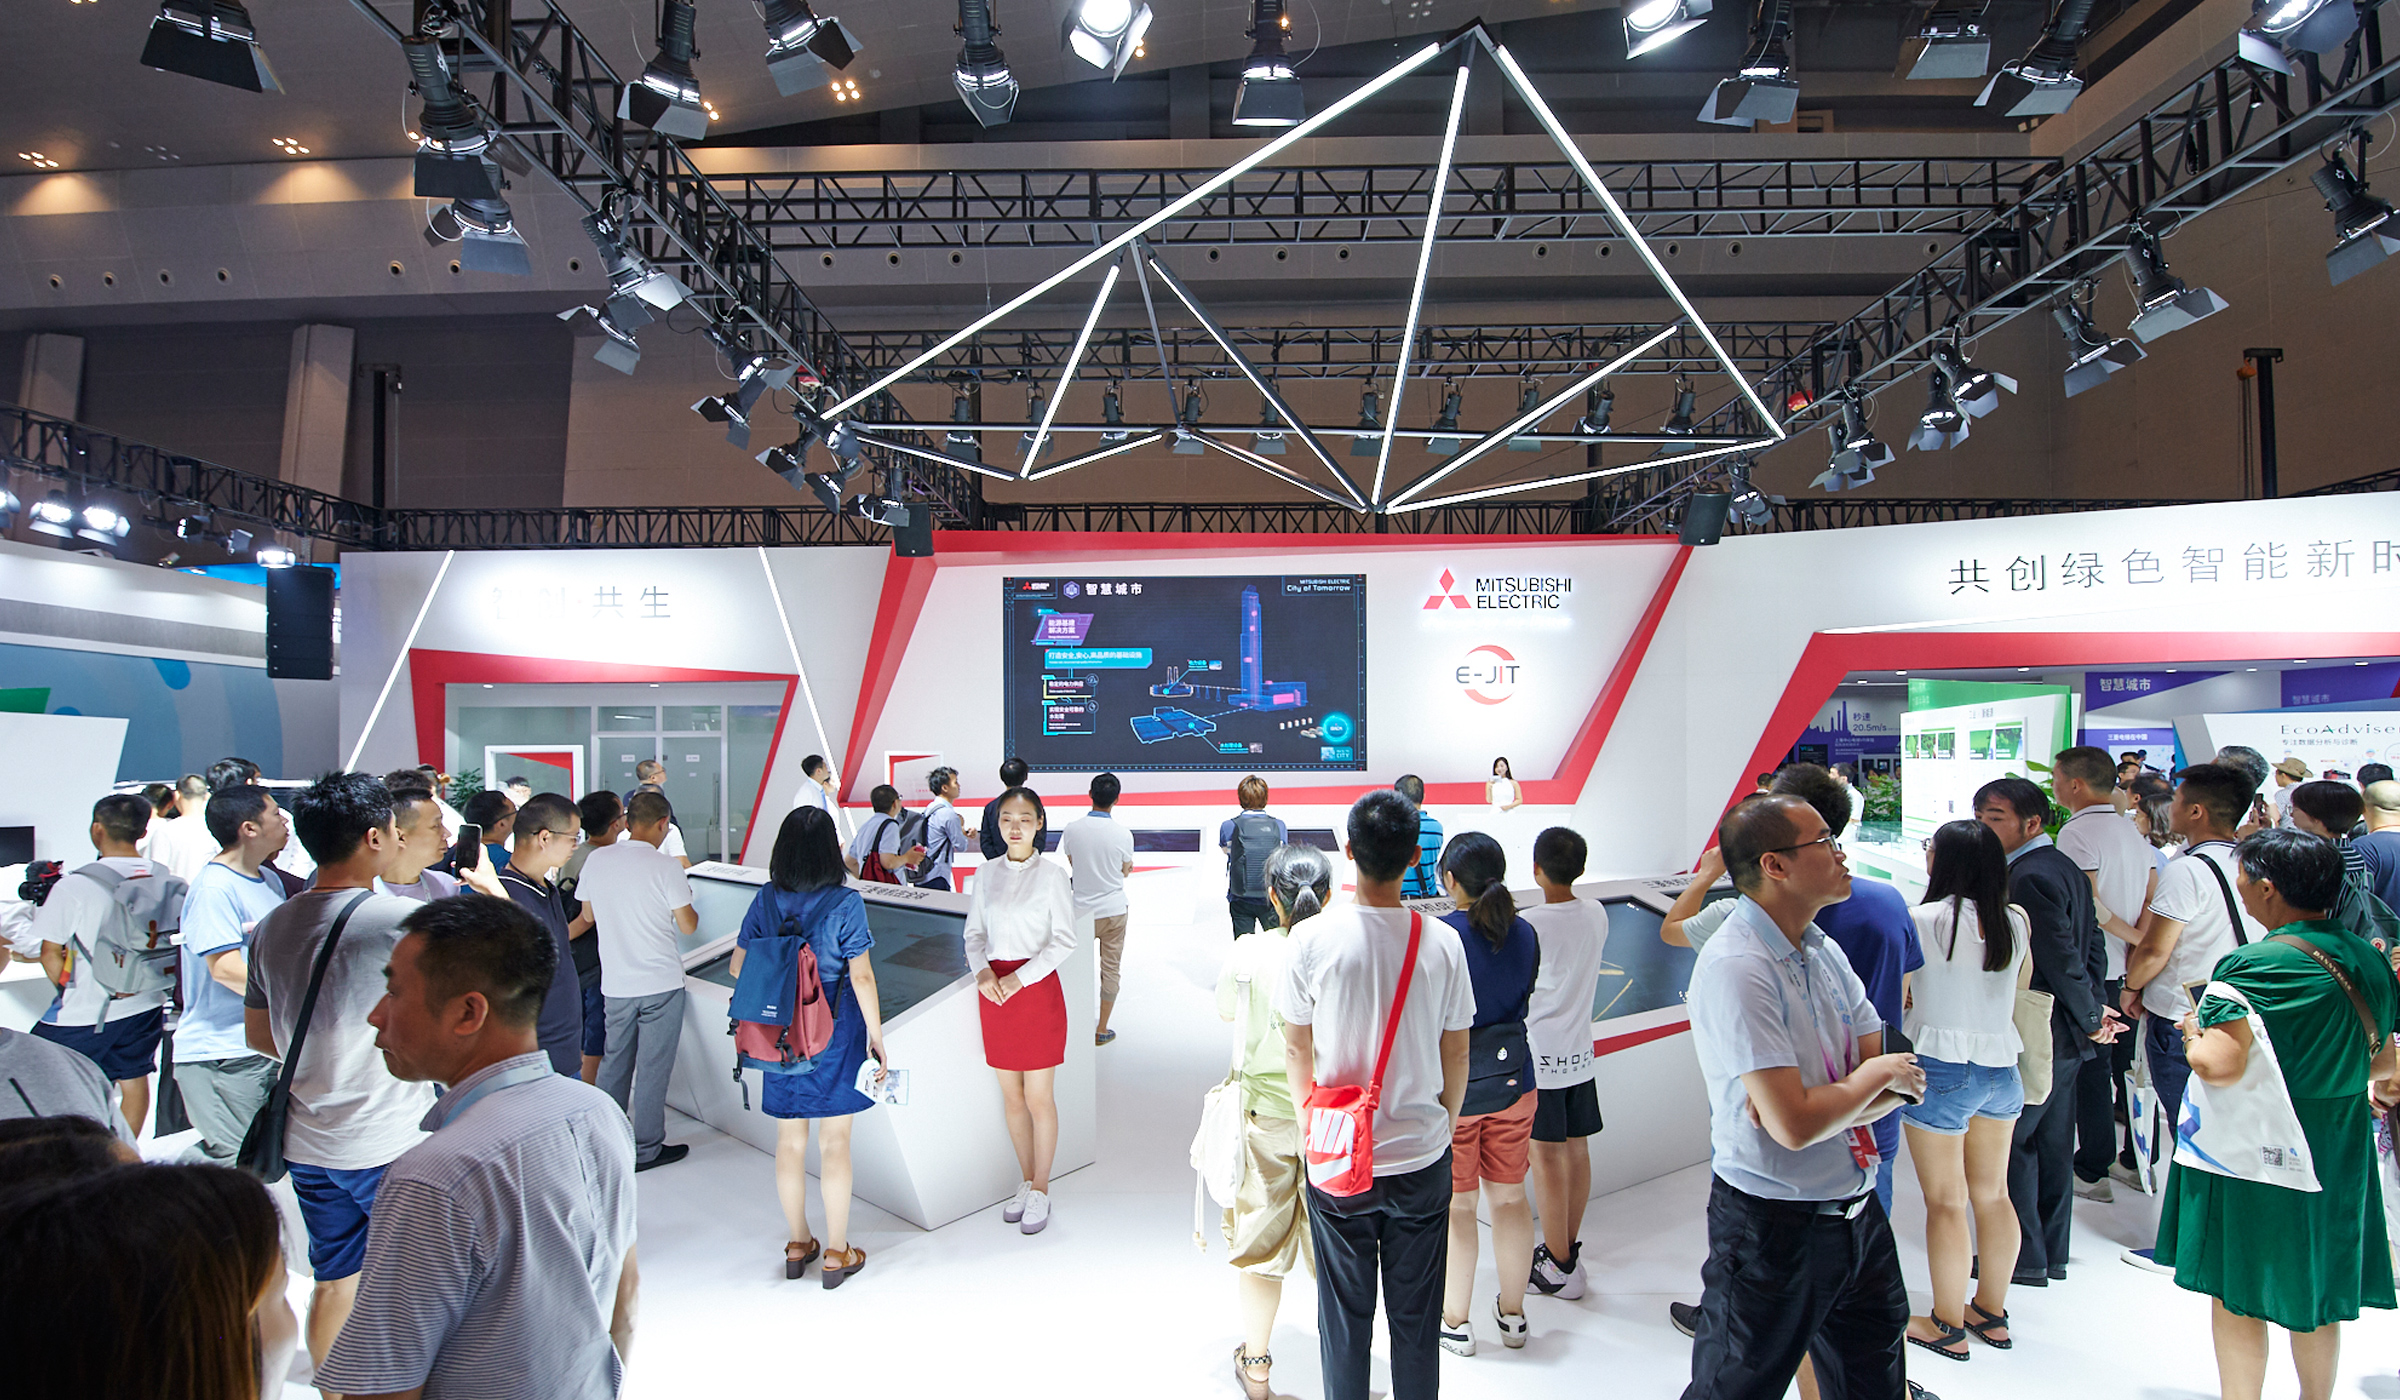 Designed Interactive Installation for Mitsubishi Electric China Event